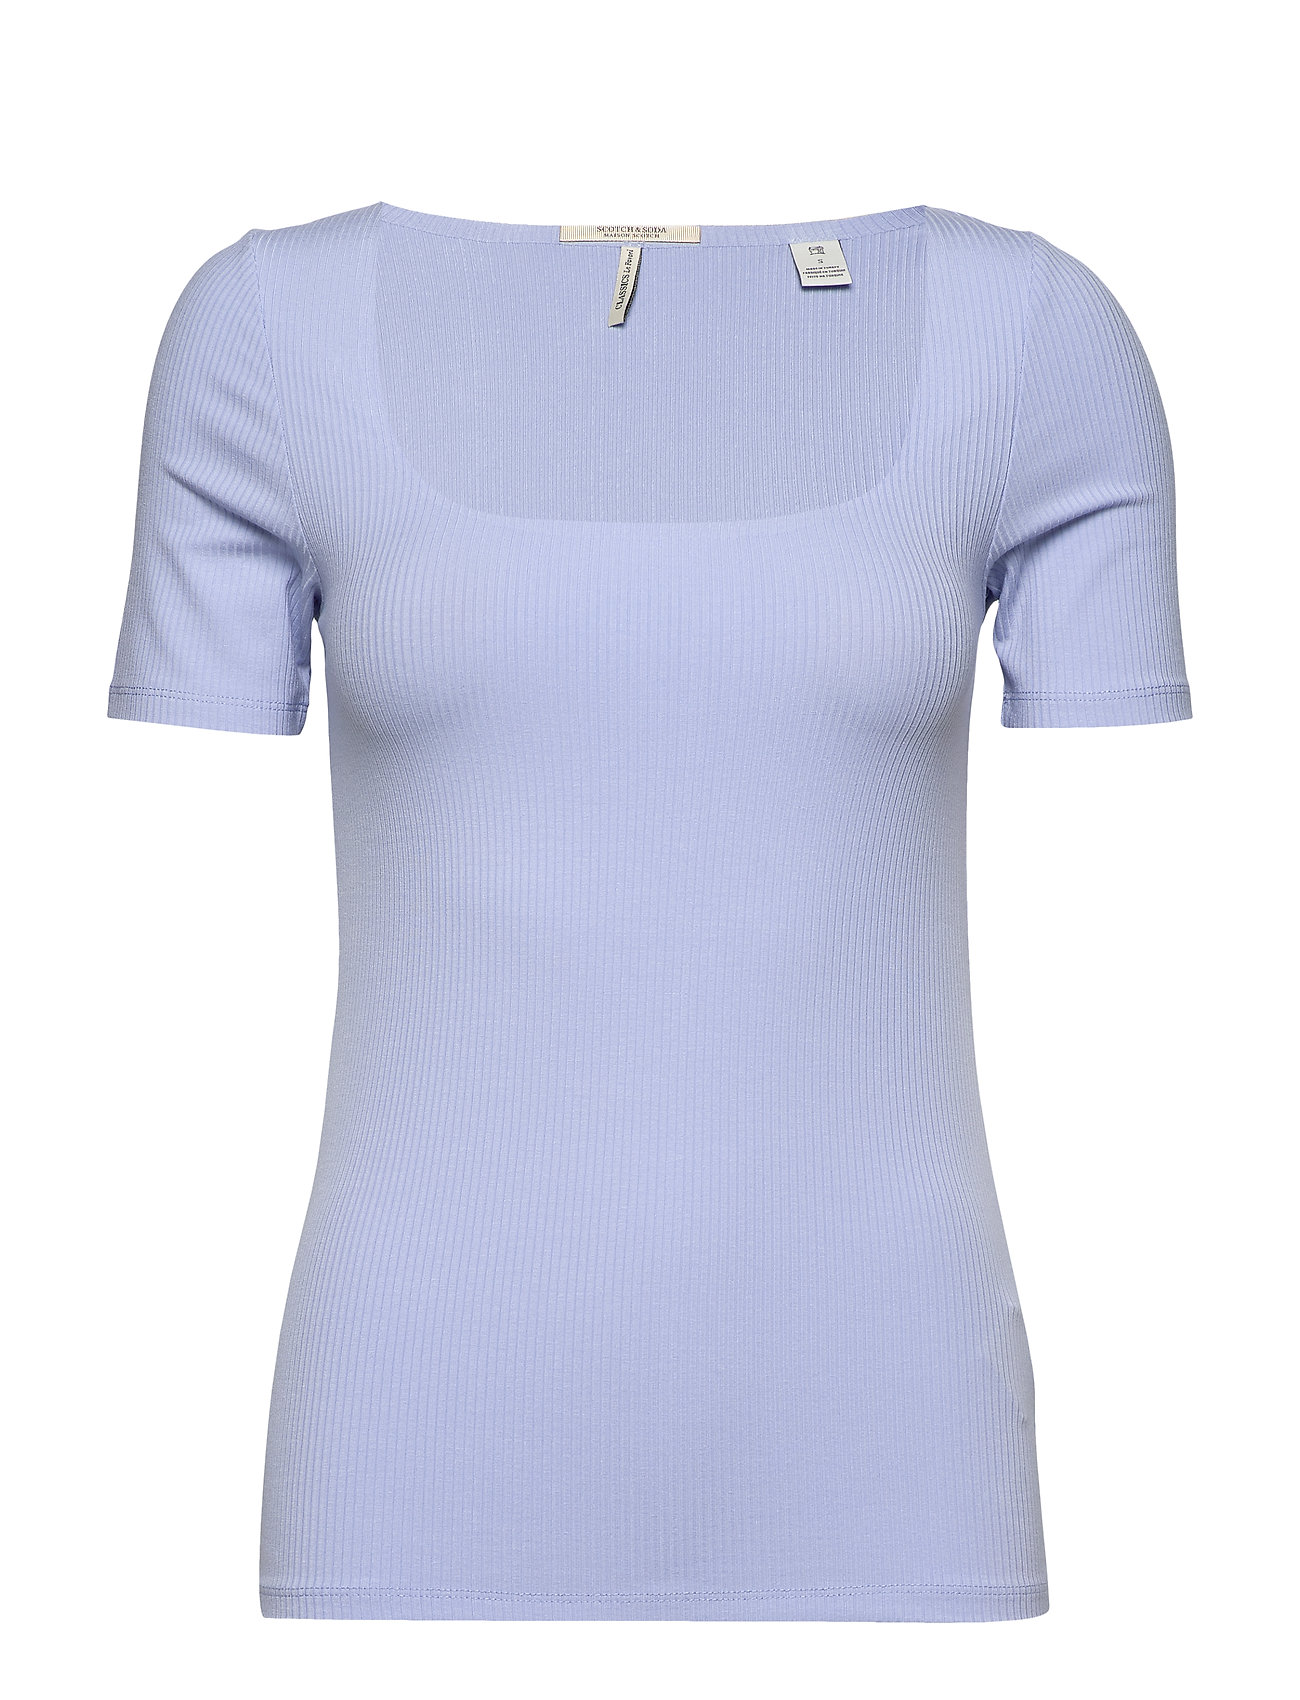 Scotch & Soda Fitted square neck rib tee - SKY BLUE